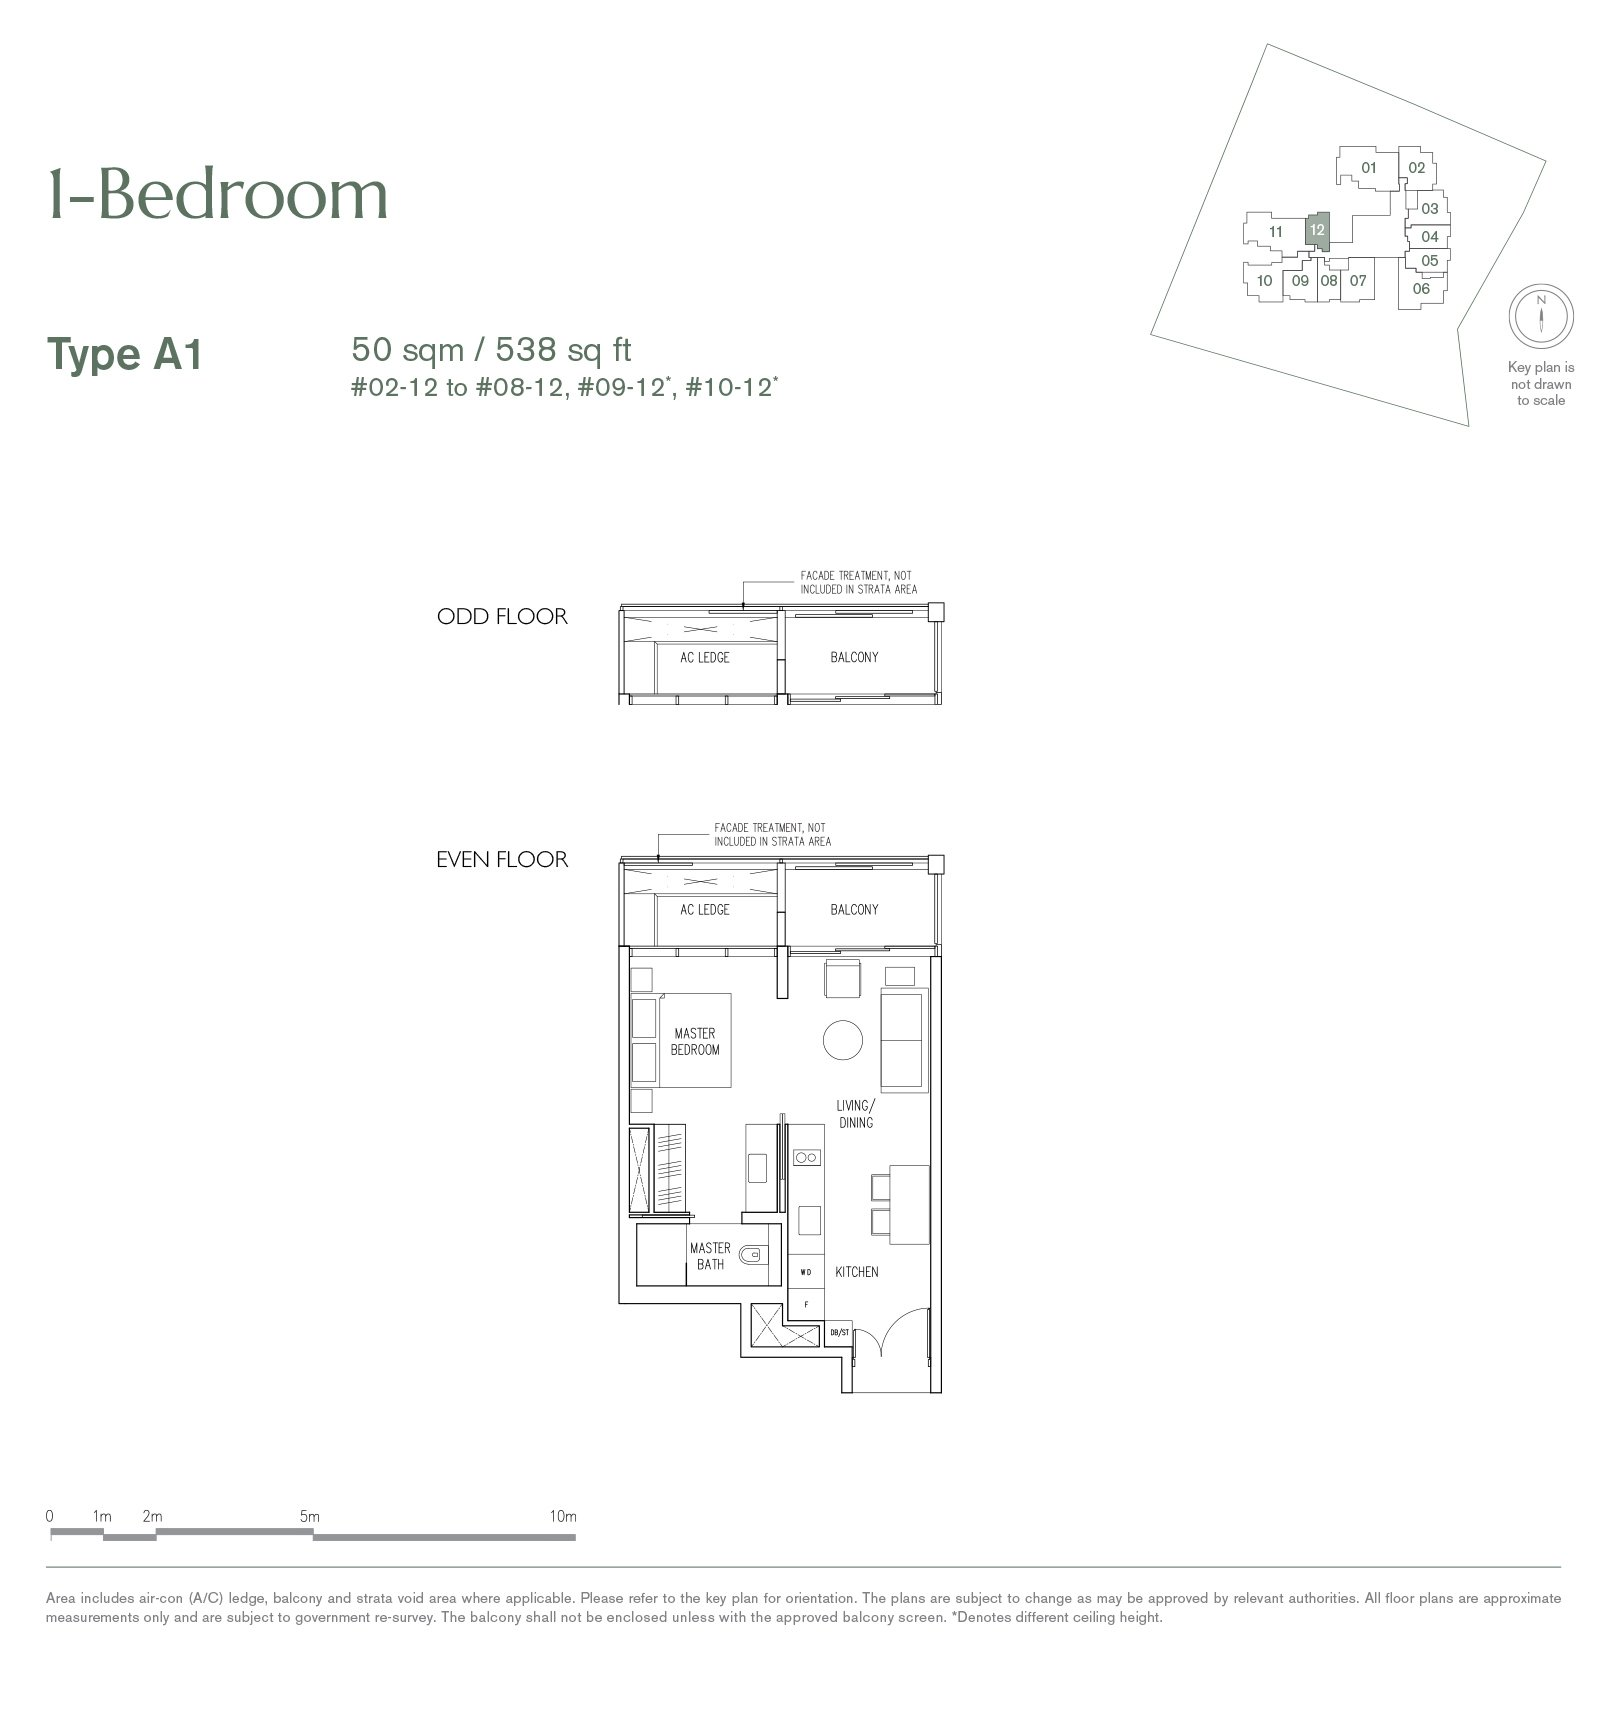 19 Nassim 纳森山公寓 floor plan 1-bedroom A1